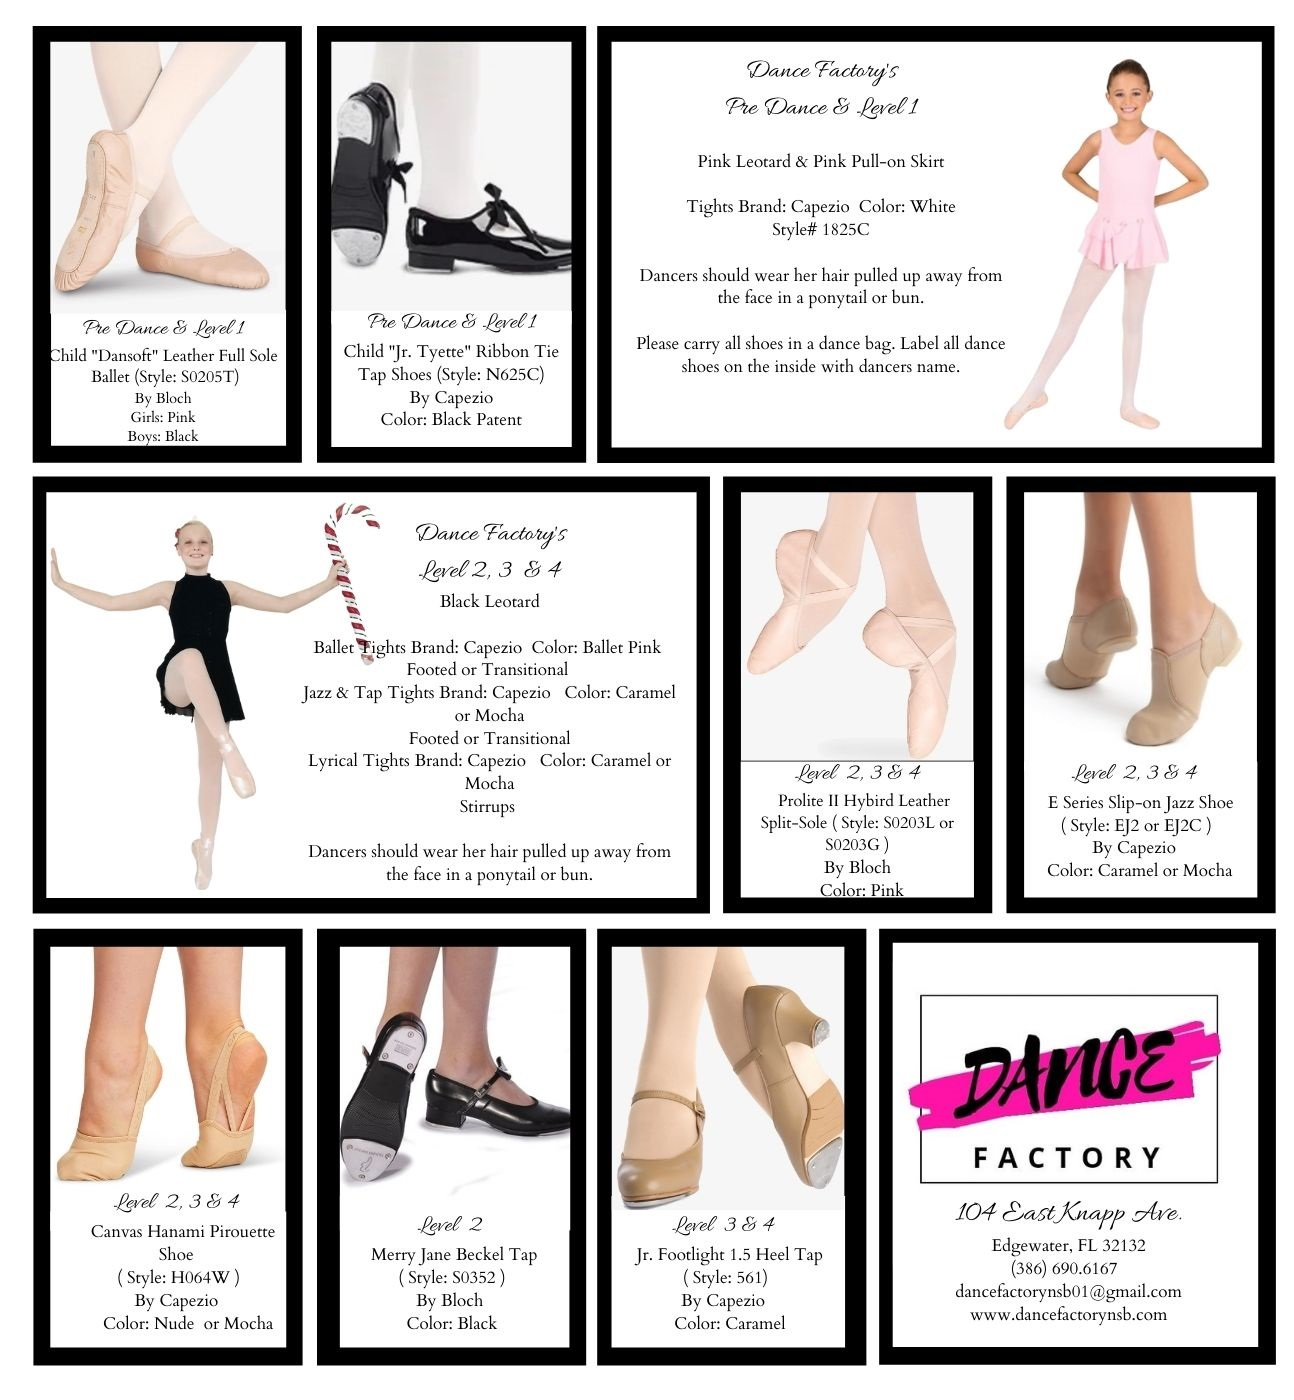 Pre Dance & Level 1 Child Daisy Leather Full Sole Ballet Shoes (Style 205C) By Capezio Girls Ballet Pink Boys Black (1)